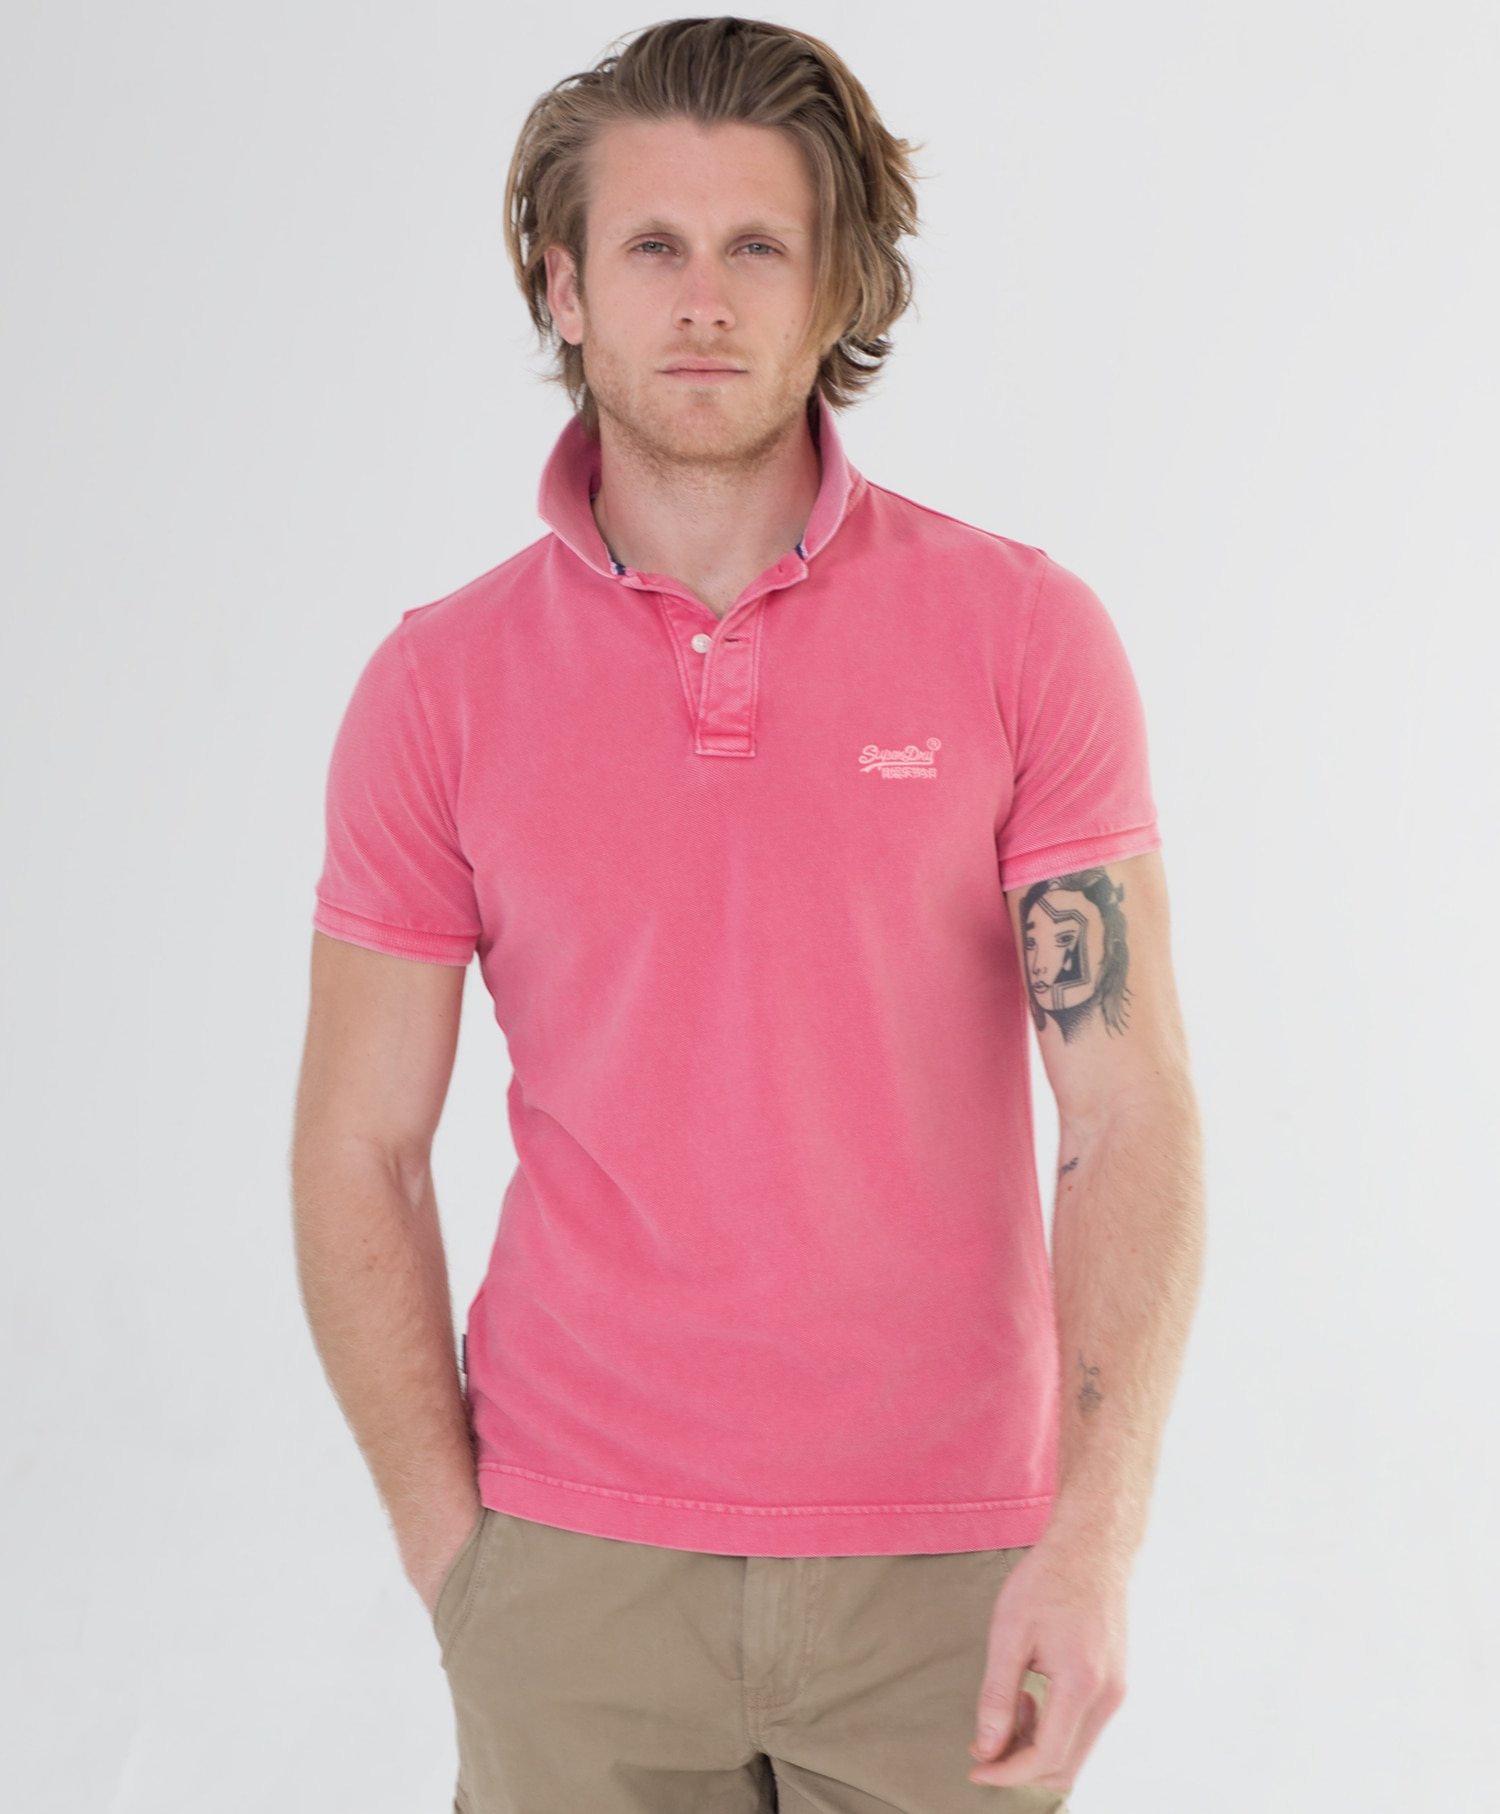 Superdry vintage polo